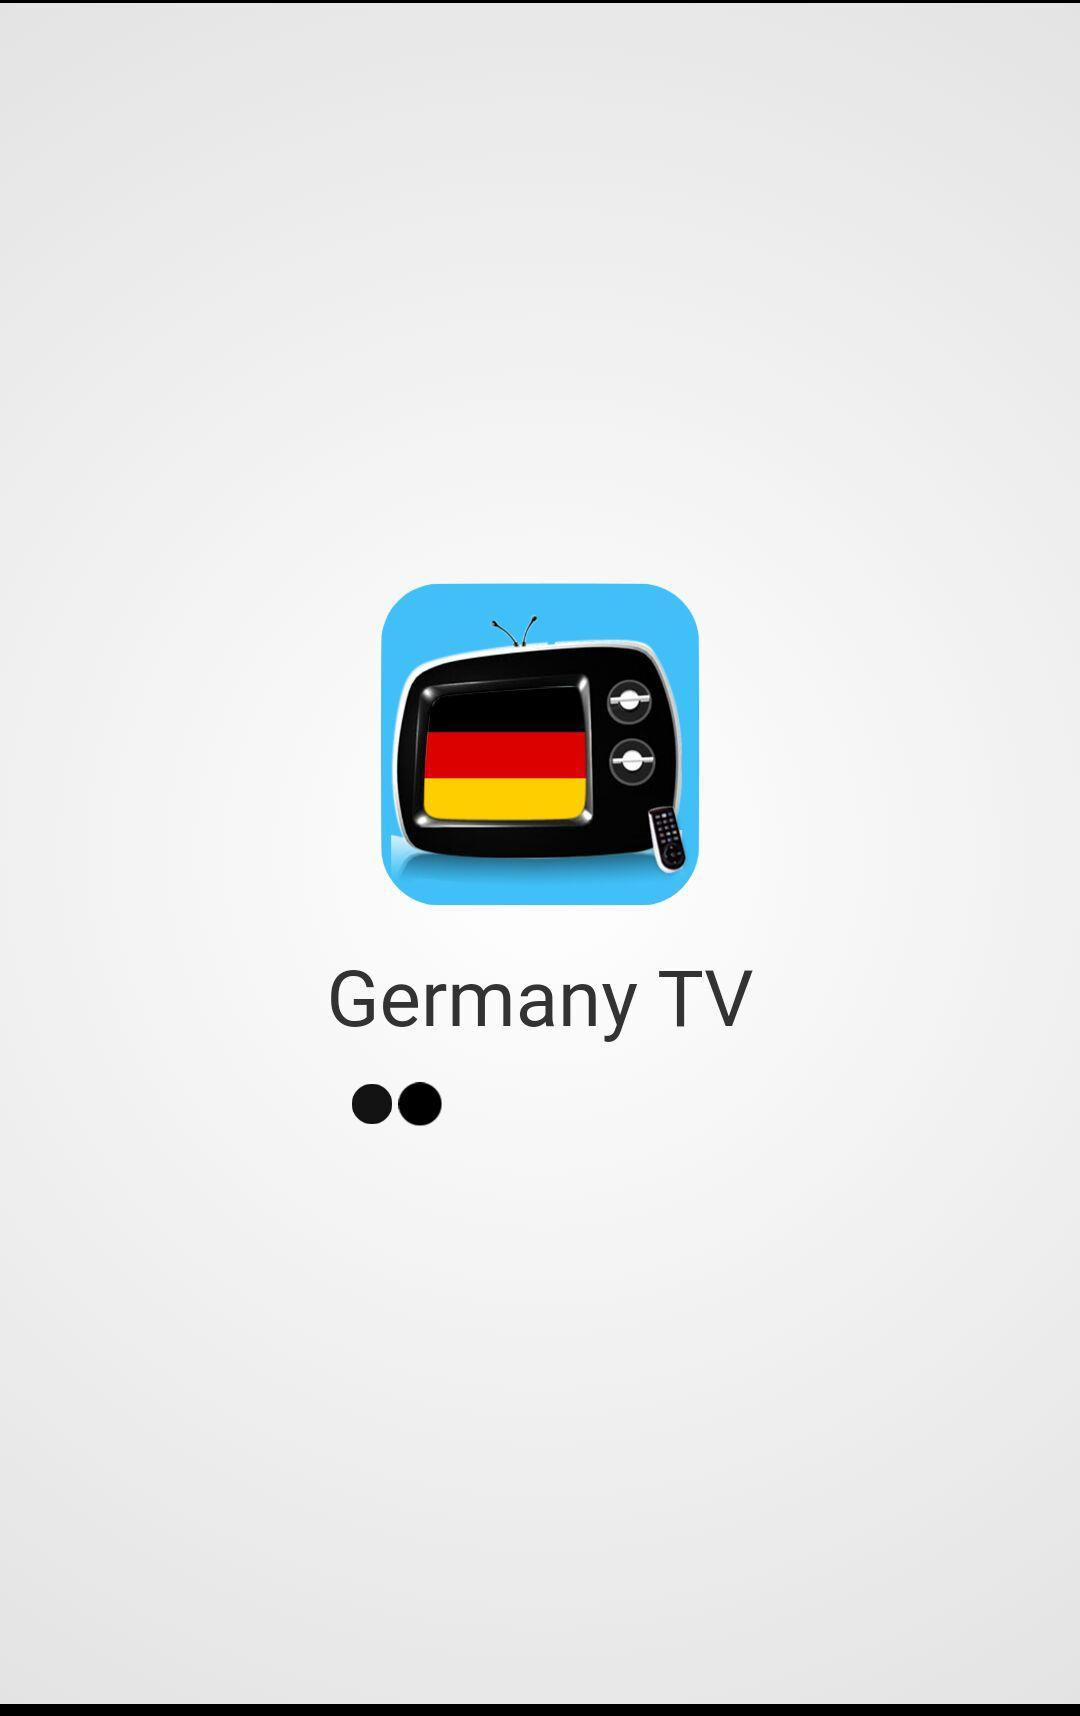 German TV - All German TV Channels HD for Android - APK Download